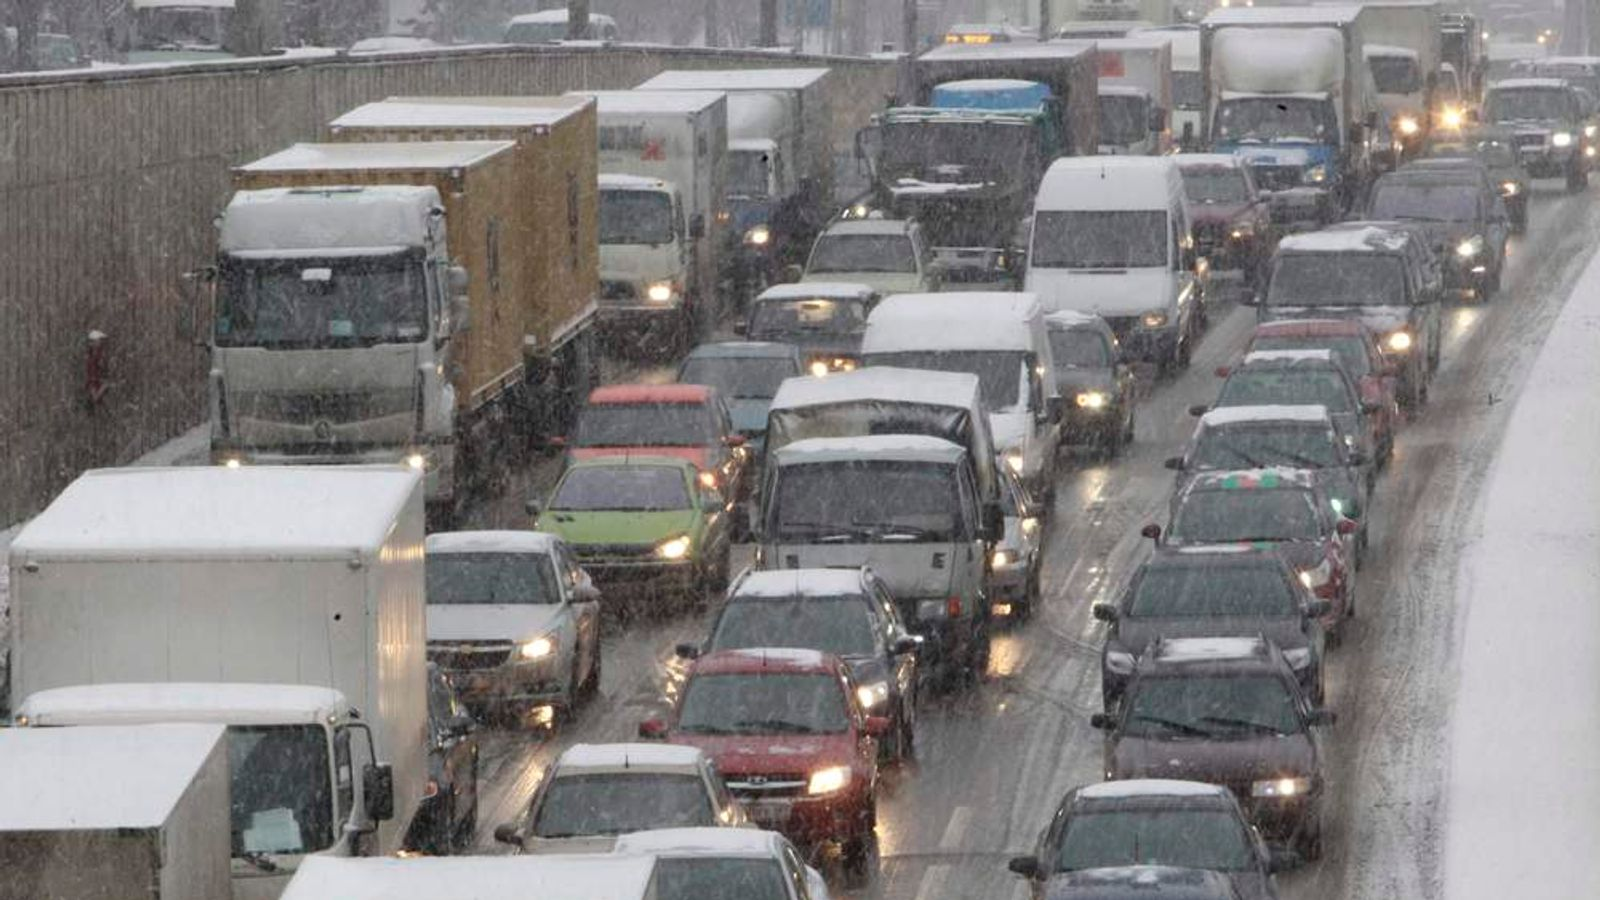 Cars and lorries in a traffic jam during a snowfall in Moscow, Russia